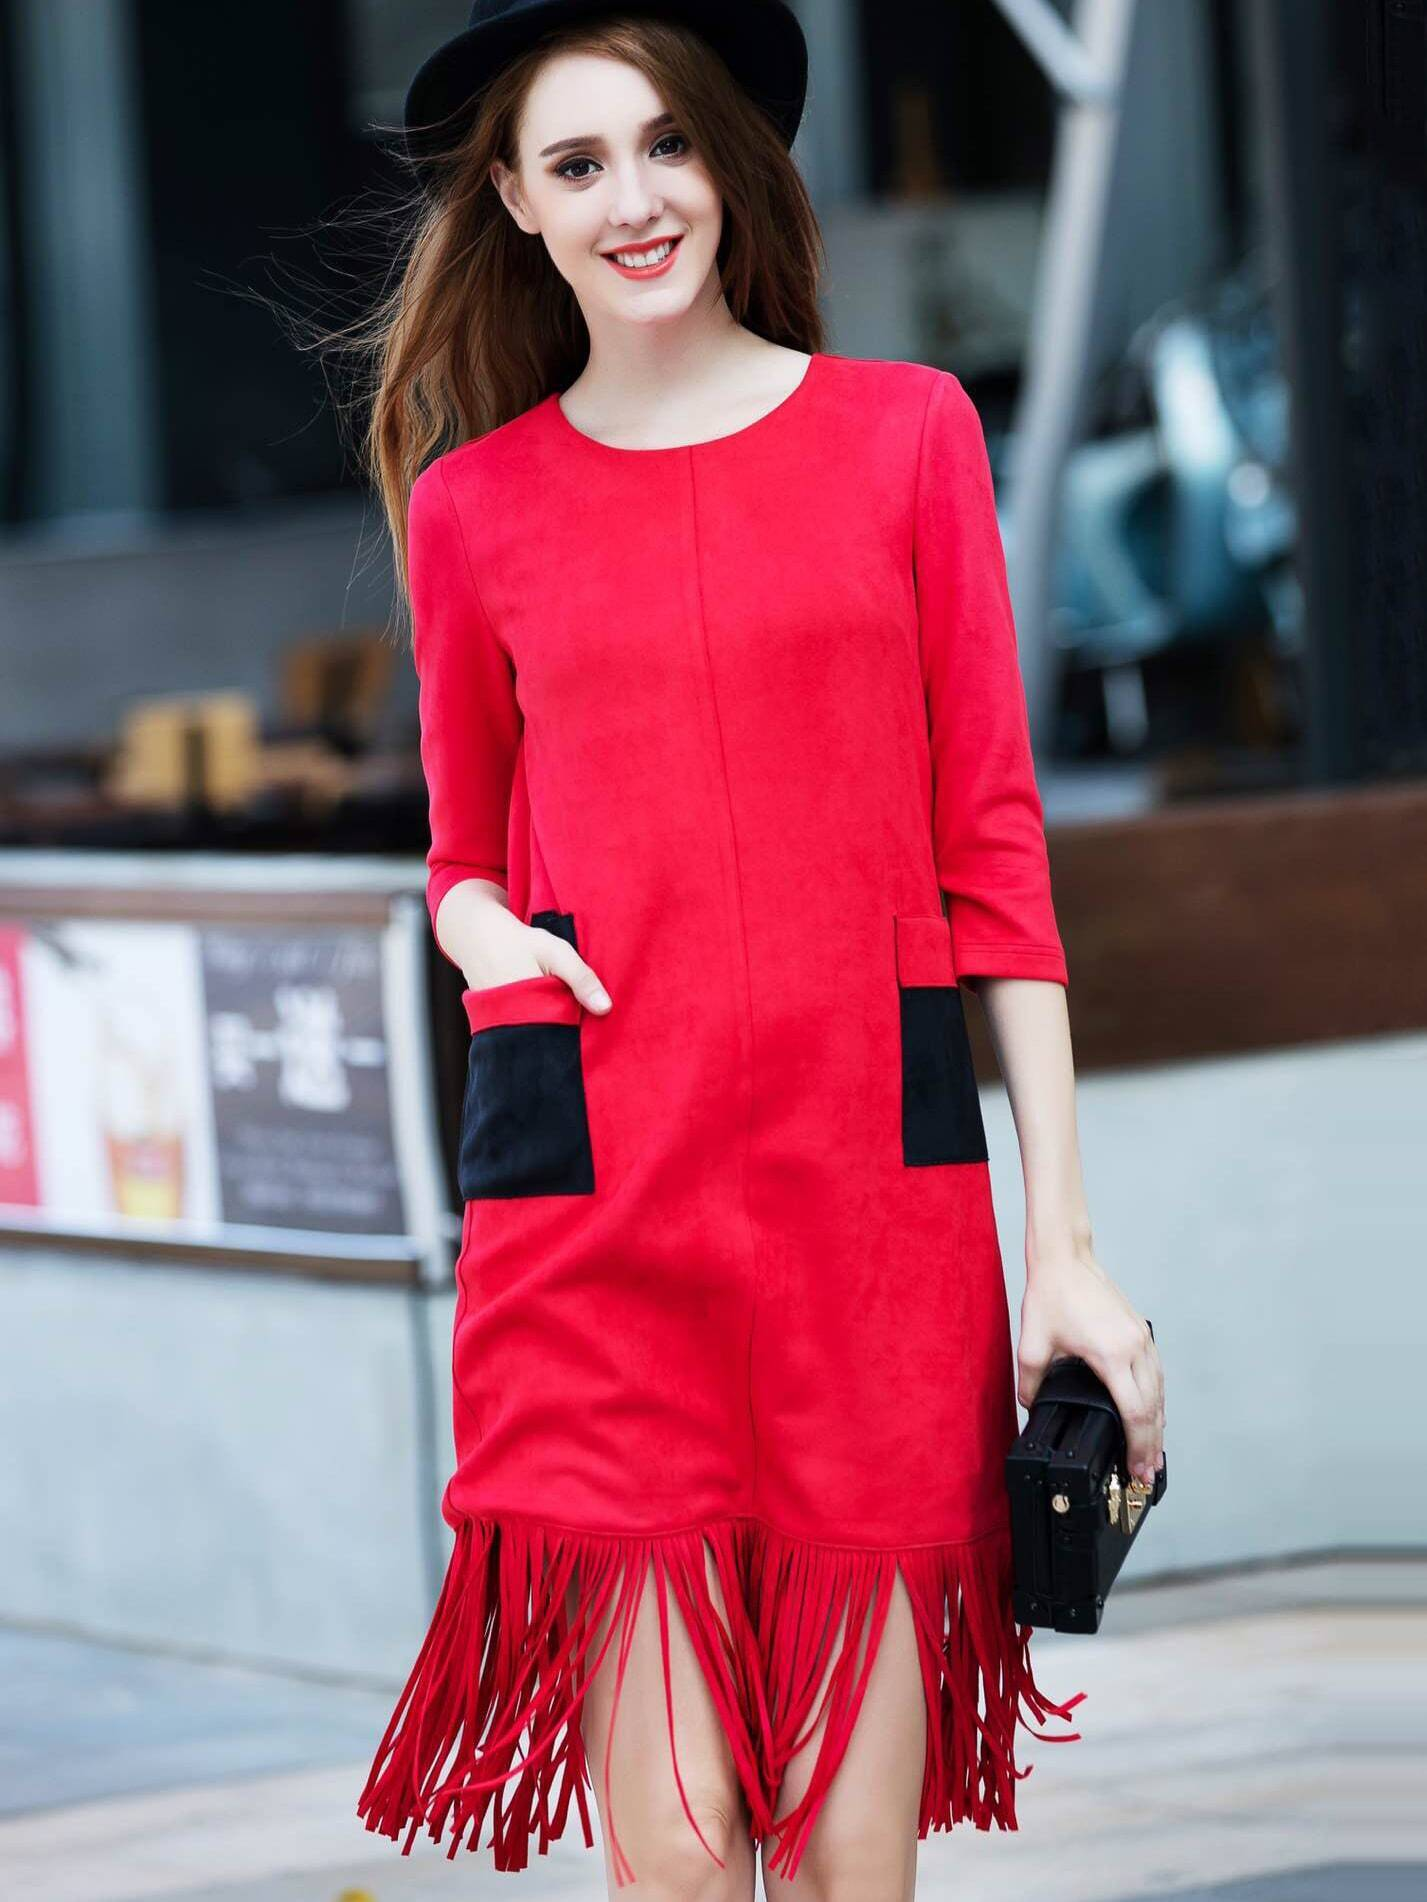 Red Round Neck Length Sleeve Pockets Tassel Dress